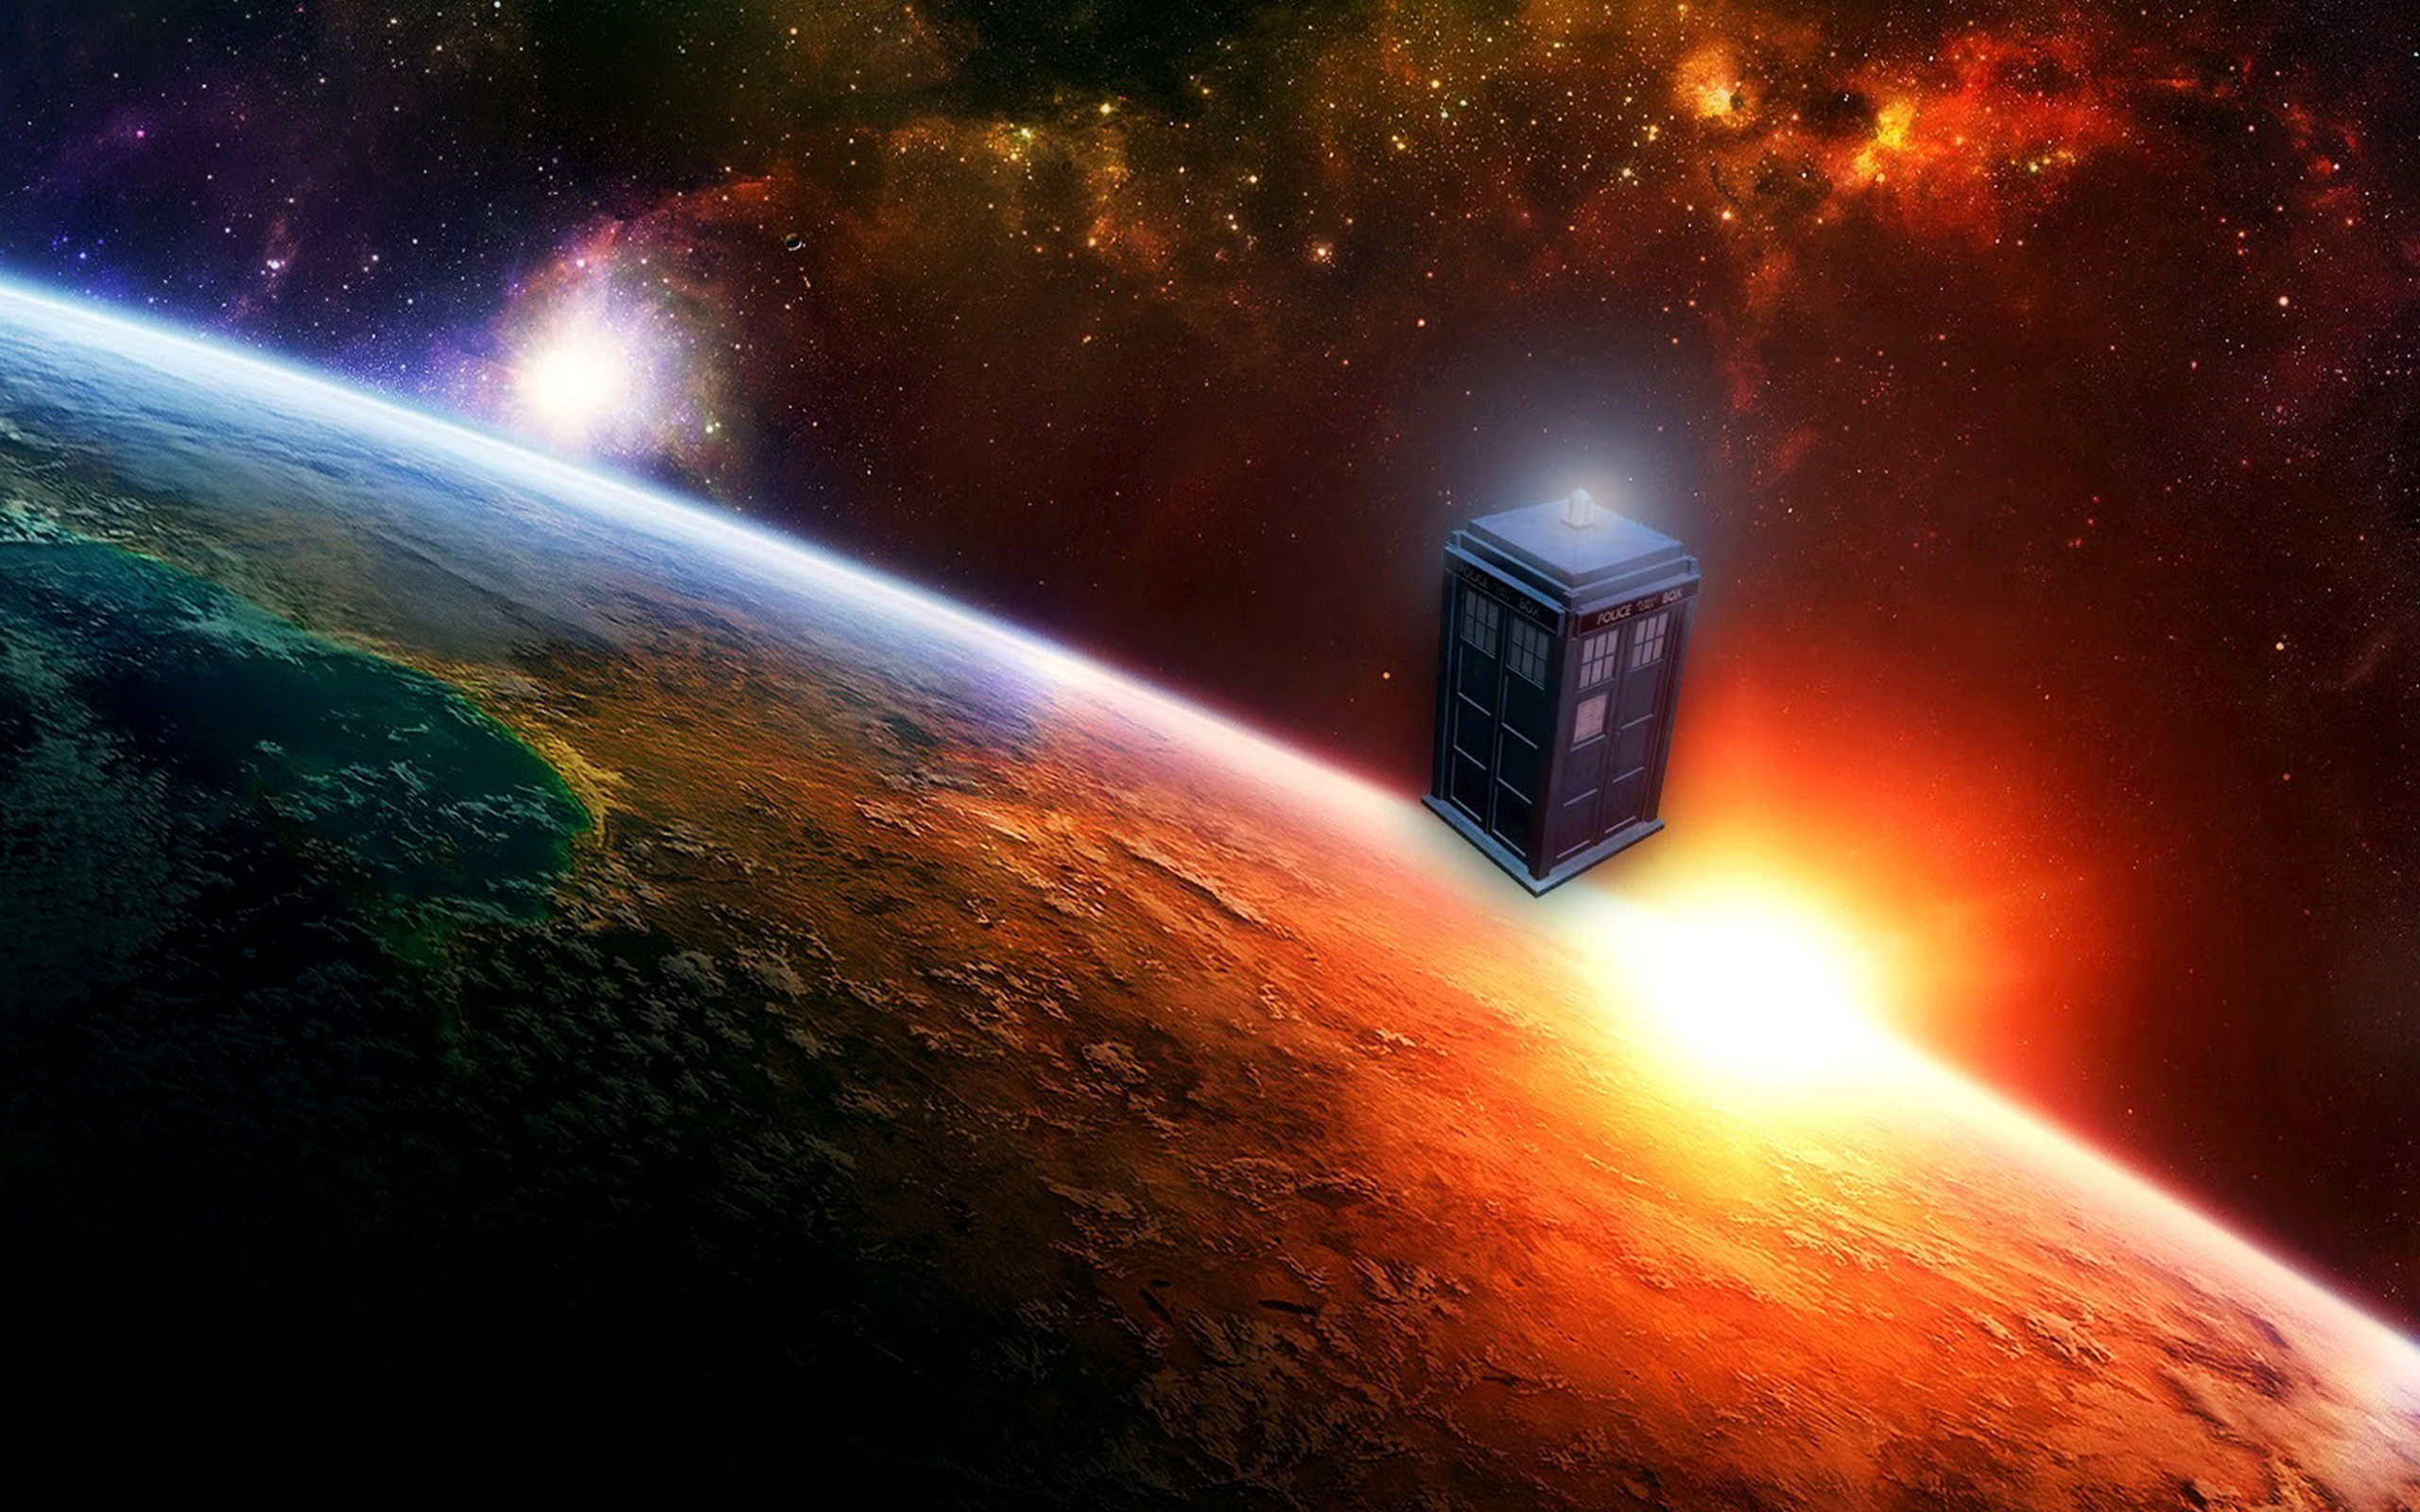 Wallpaper-doctor-who-24565925-2560-1600-by-paula-